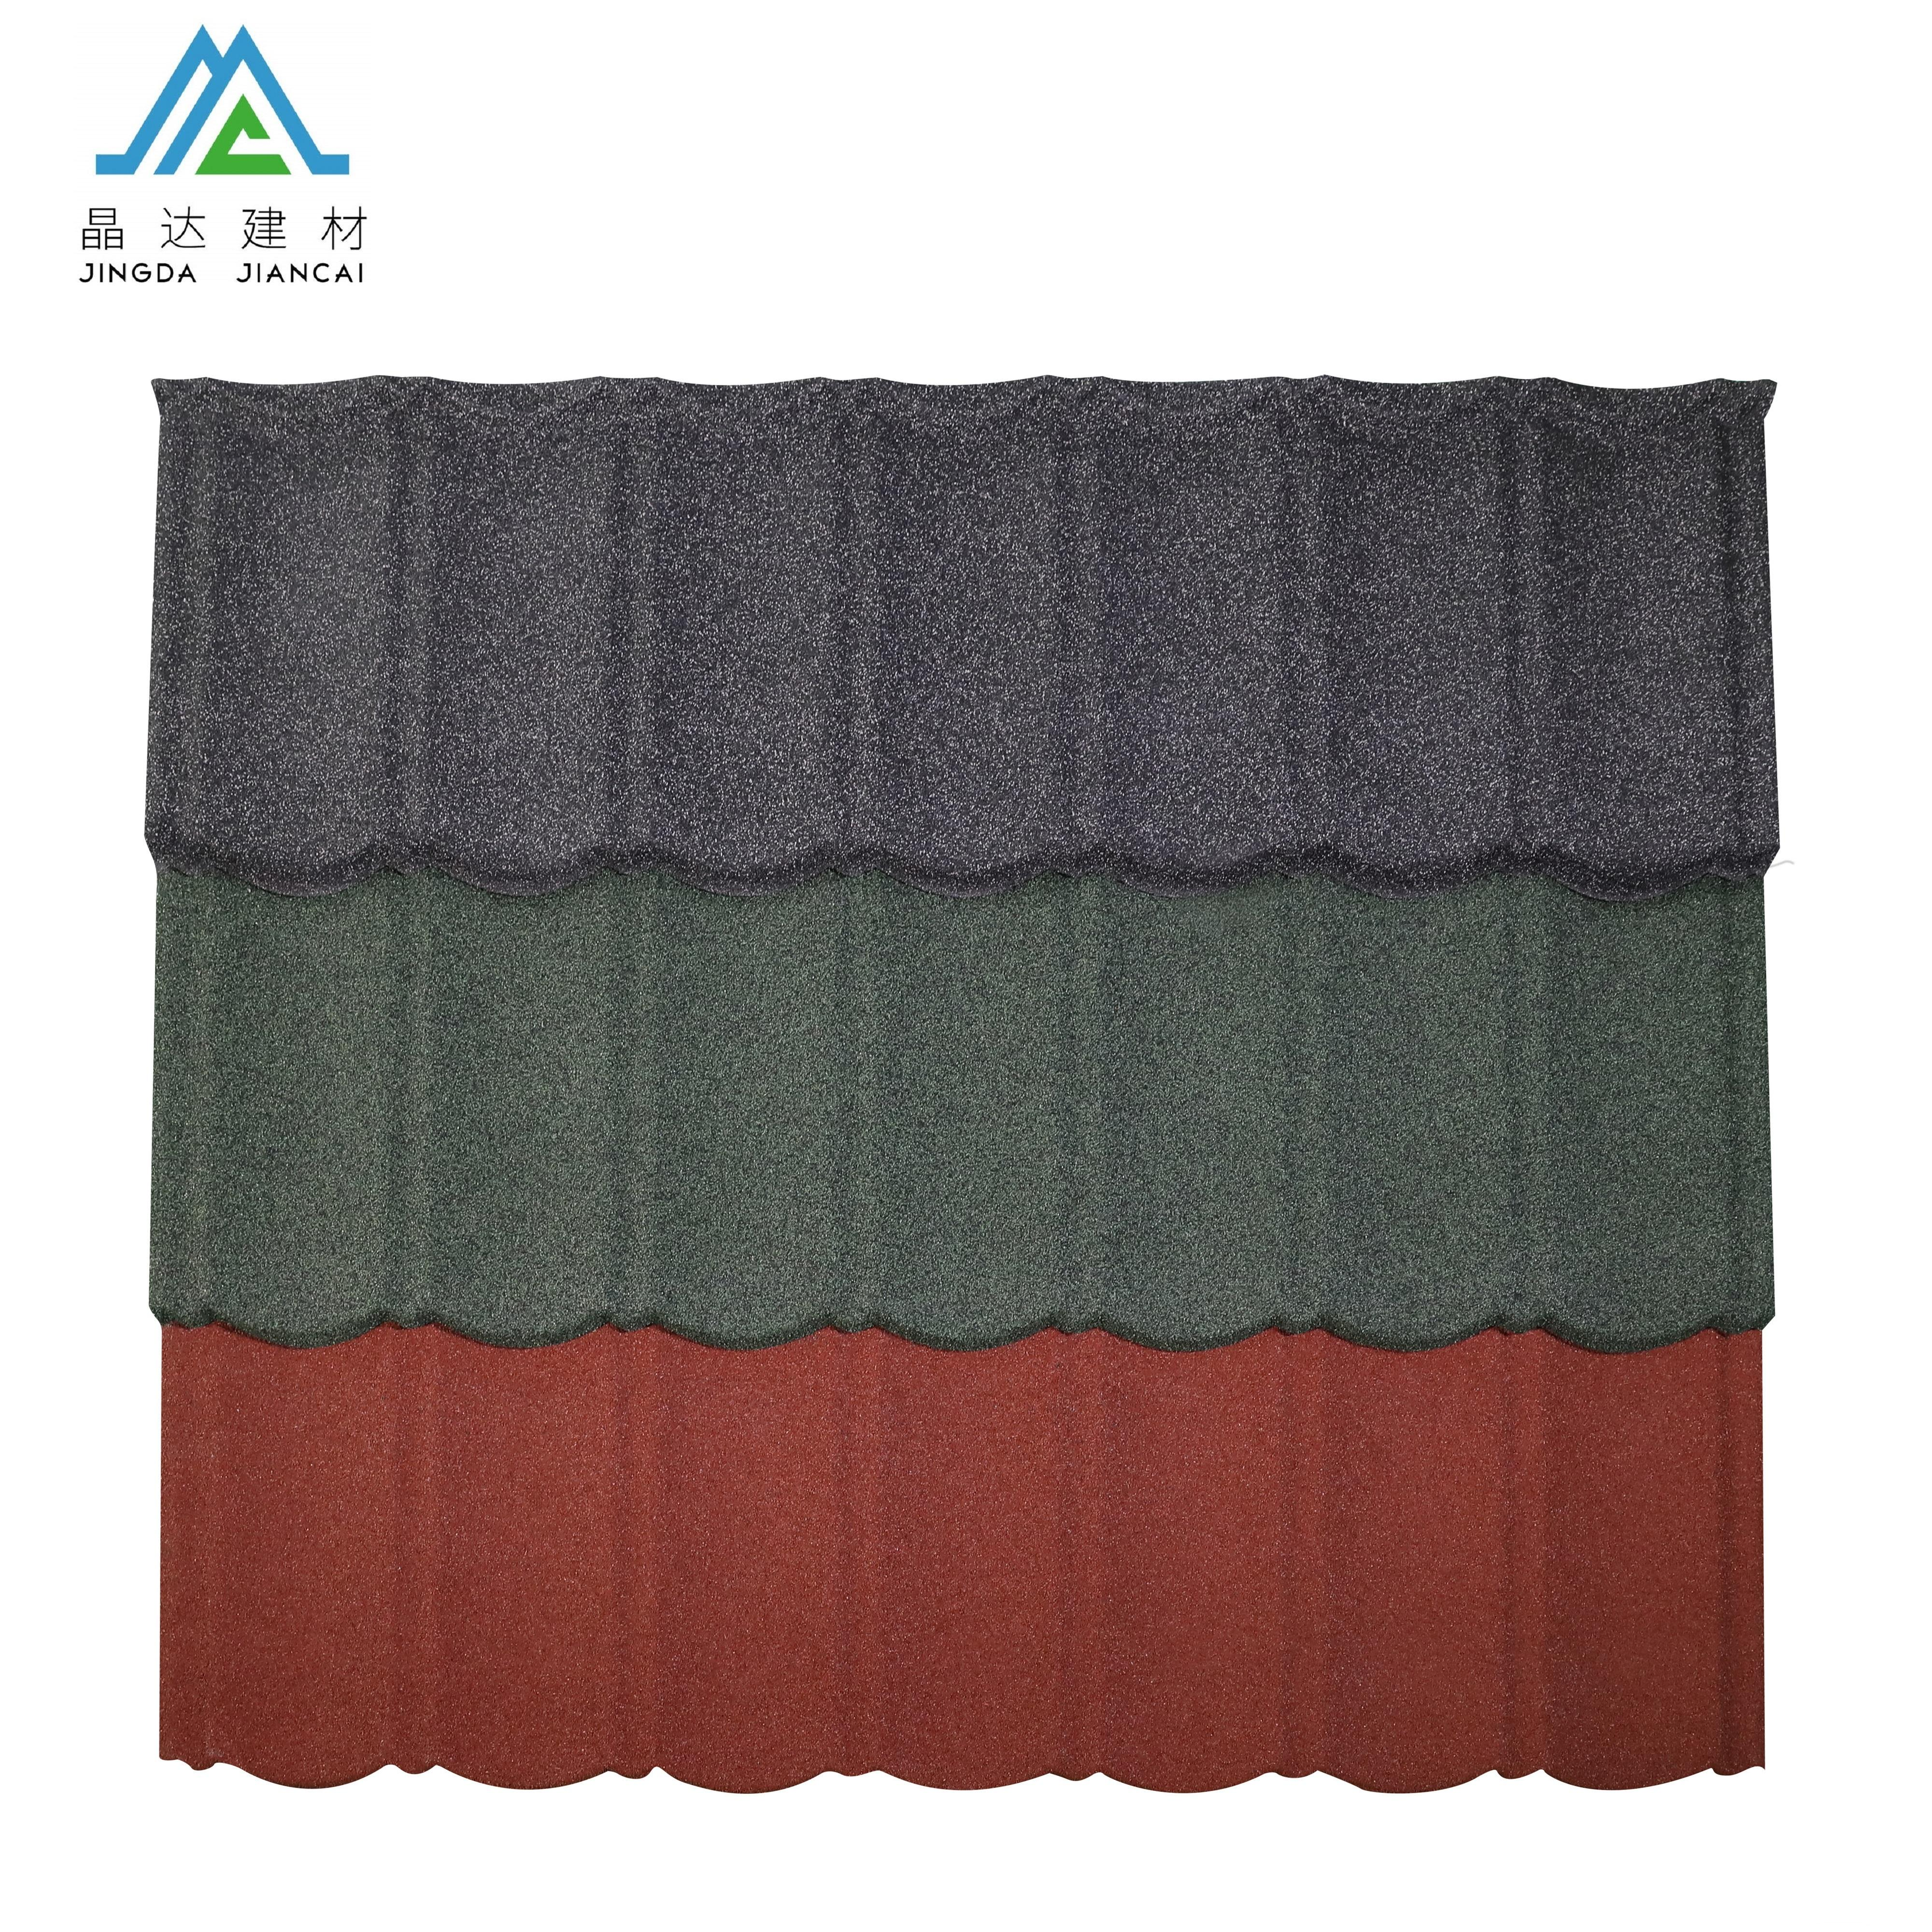 Red Stone Coated Wholesale Corrugated Metal Roofing Sheet, Eaves Tiles Metal Roofing Material